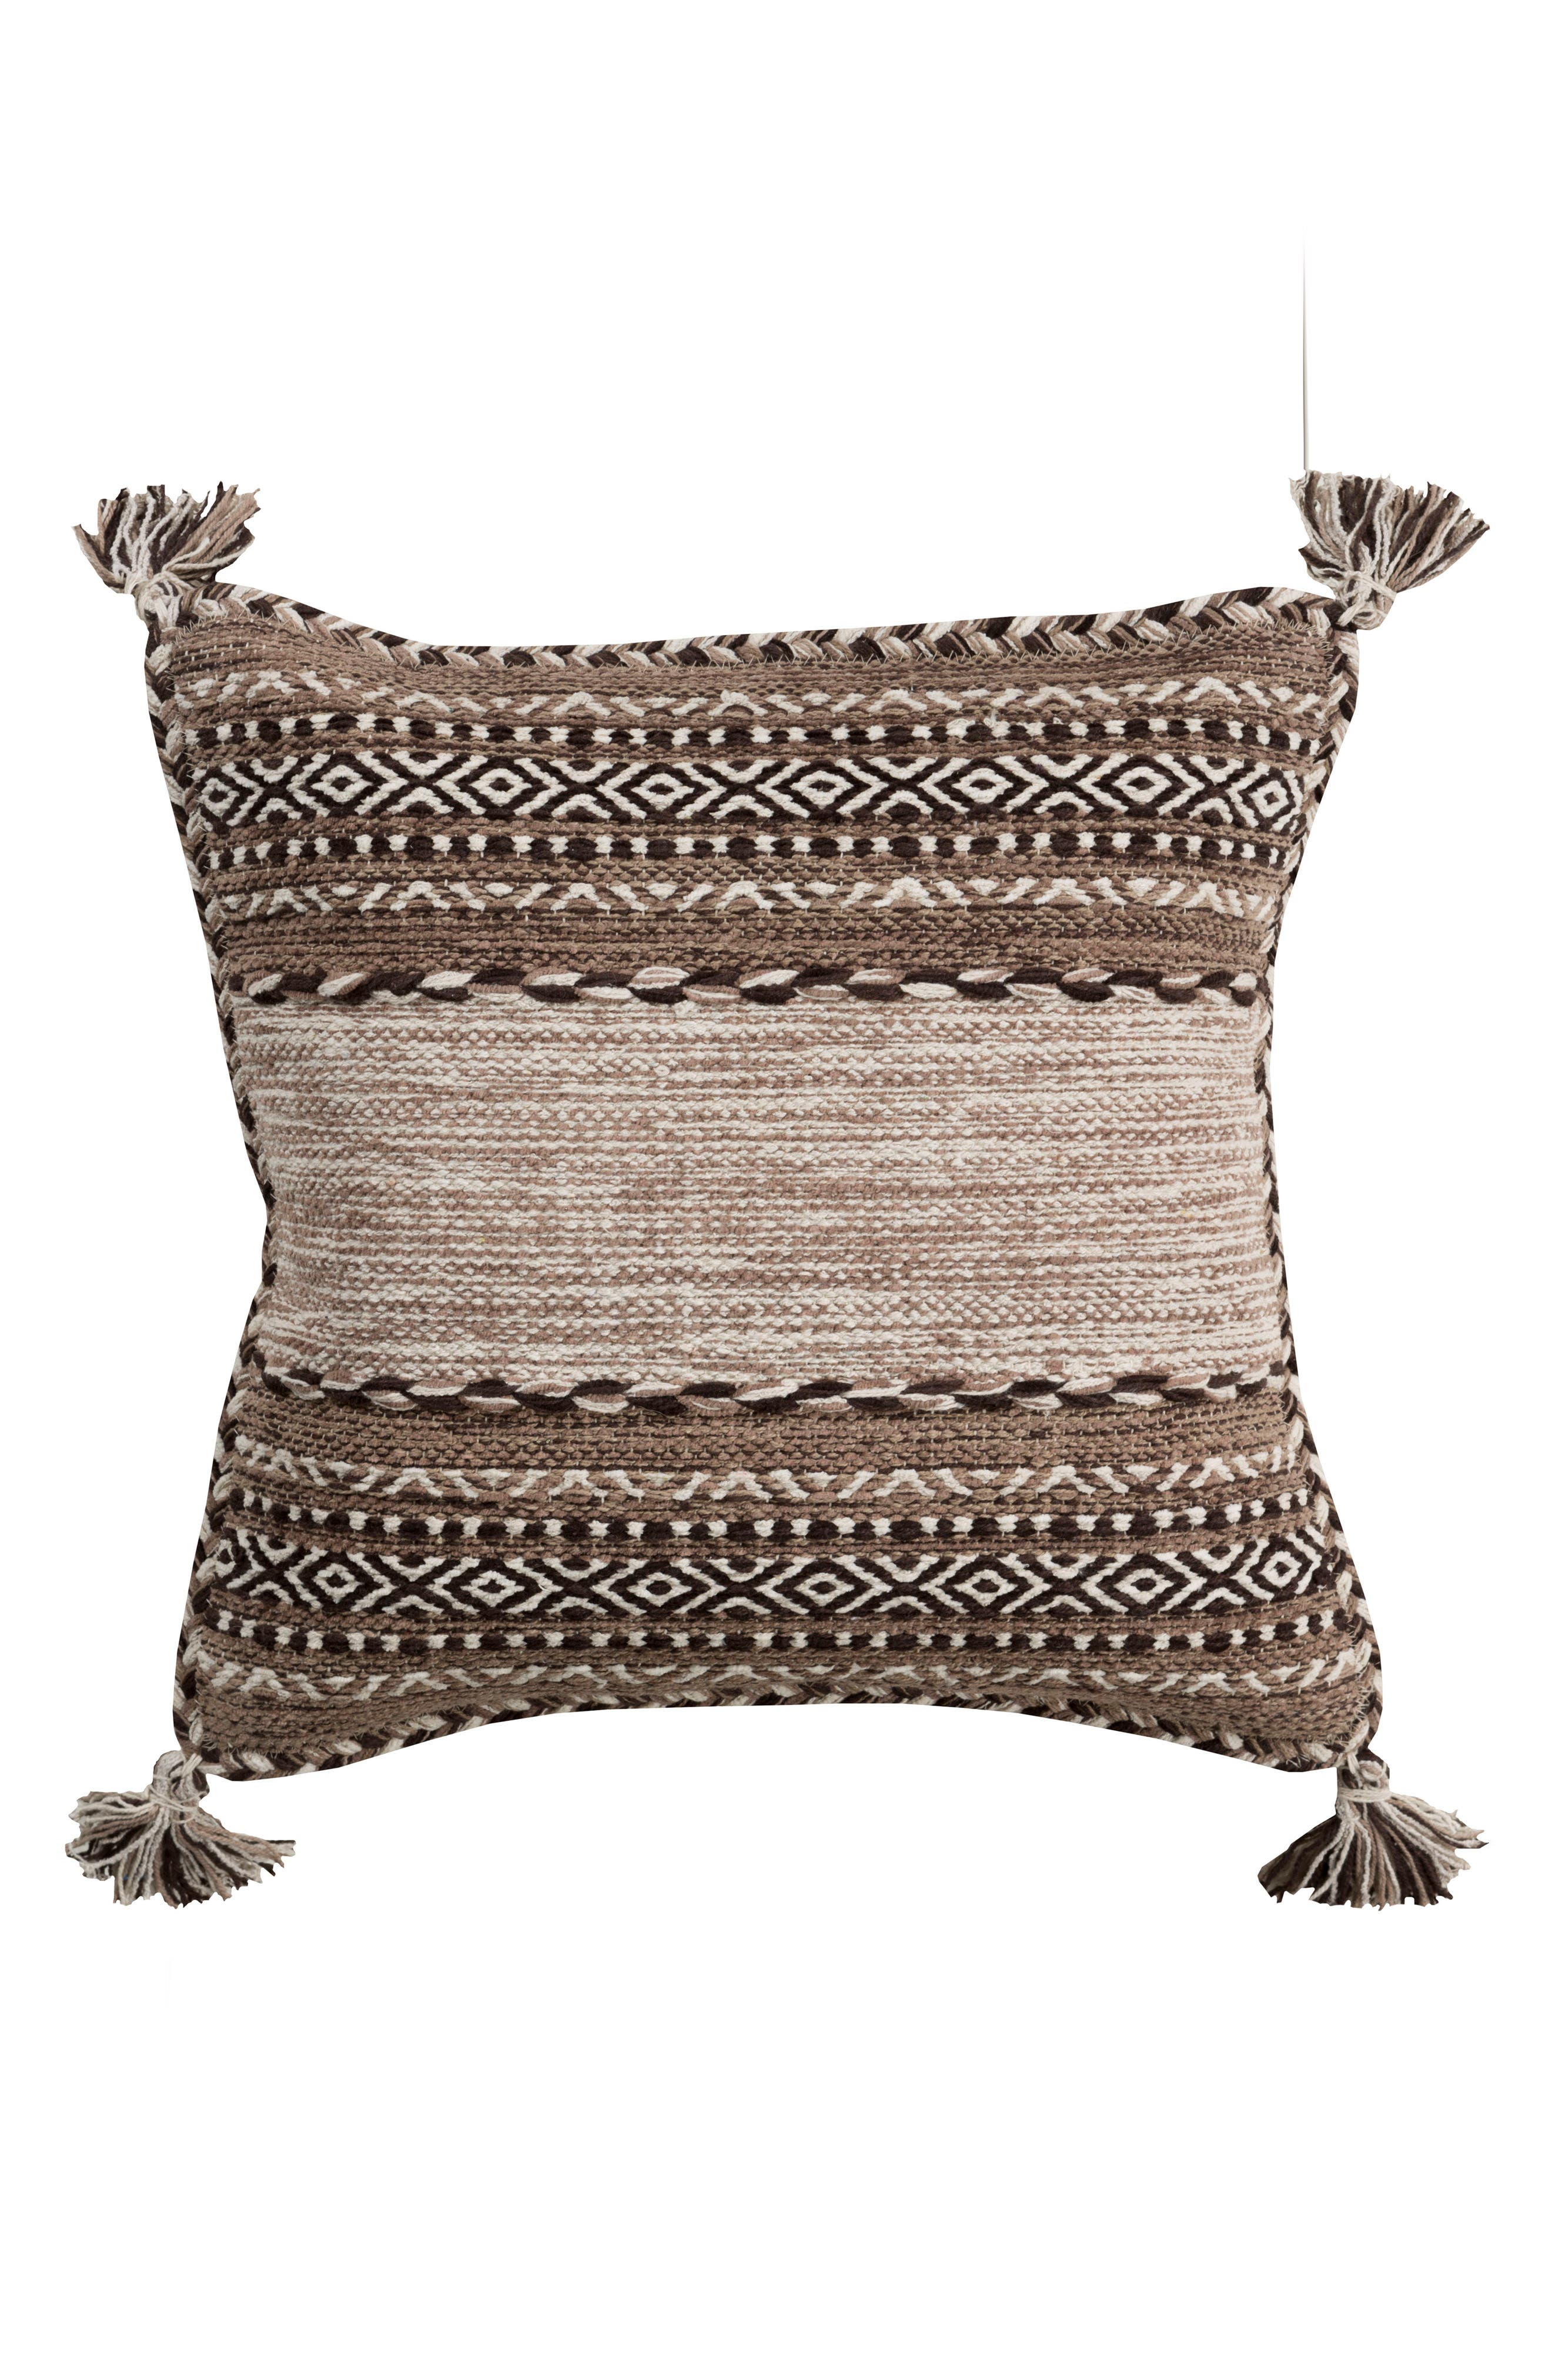 SURYA HOME Trenza Pillow, Main, color, CAMEL/ BROWN/ IVORY